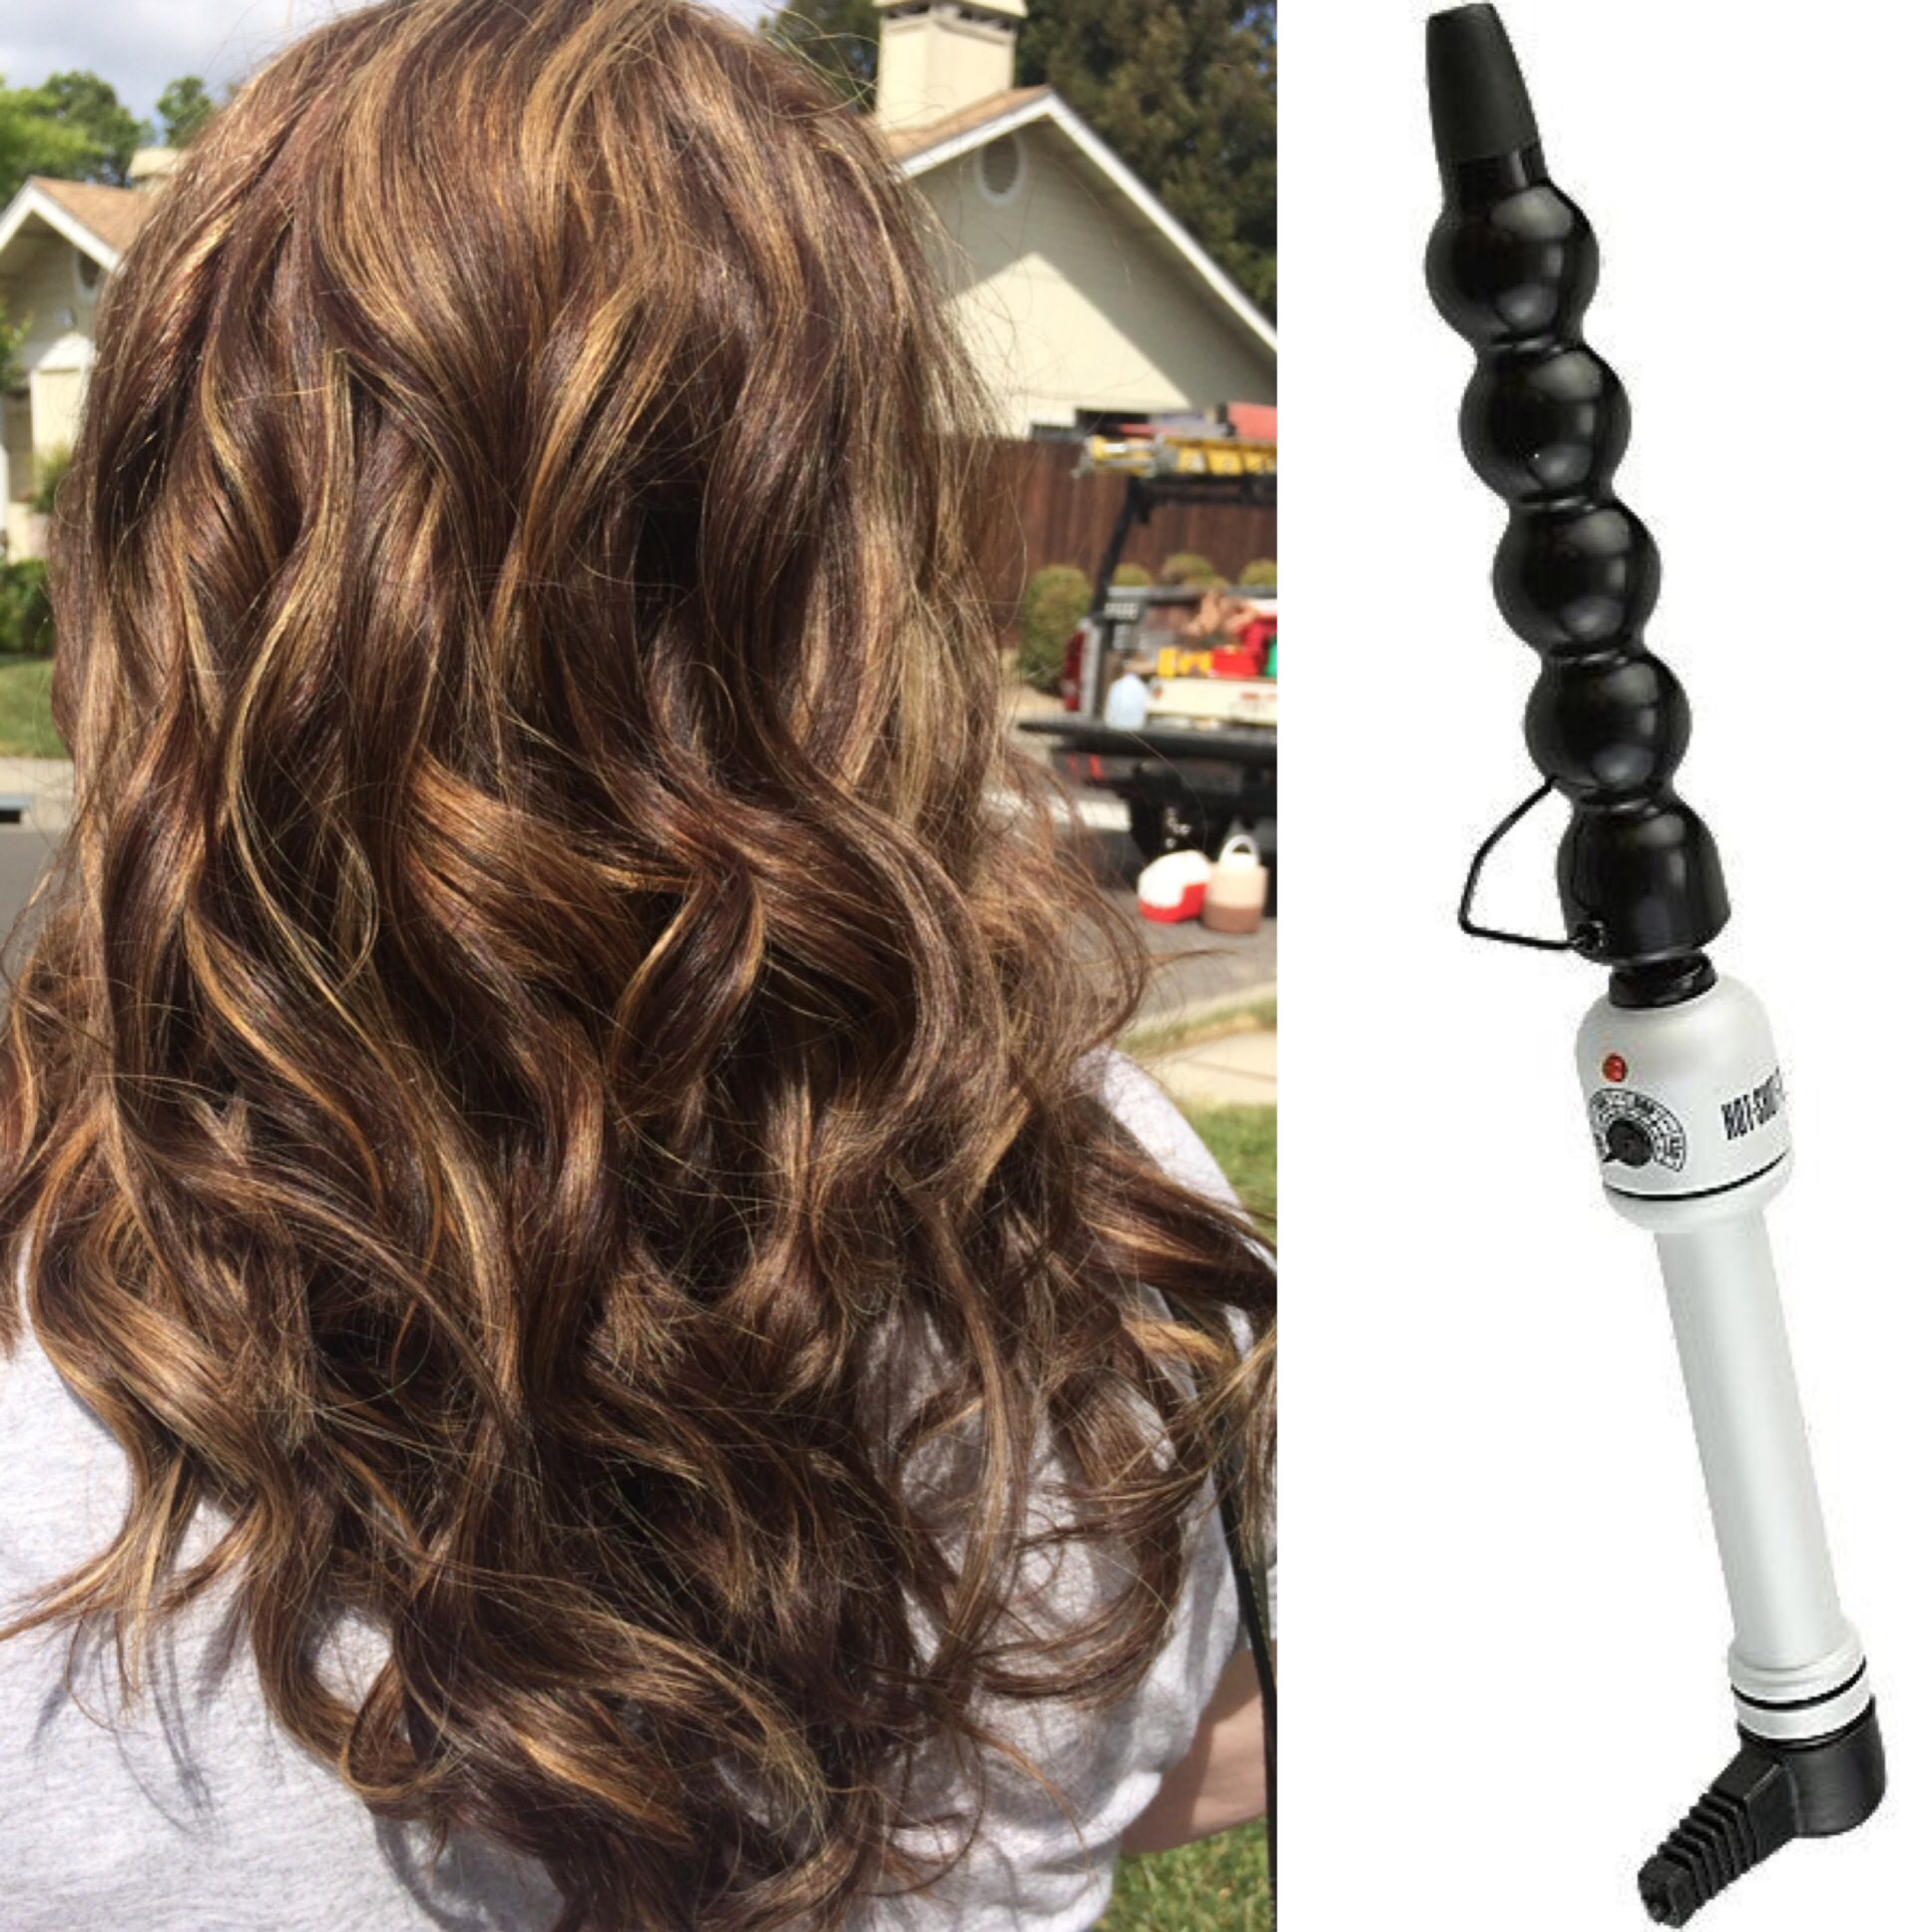 Base Color Highlights And Curls With The Hot Tools Bubble Curling Wand By Samantha